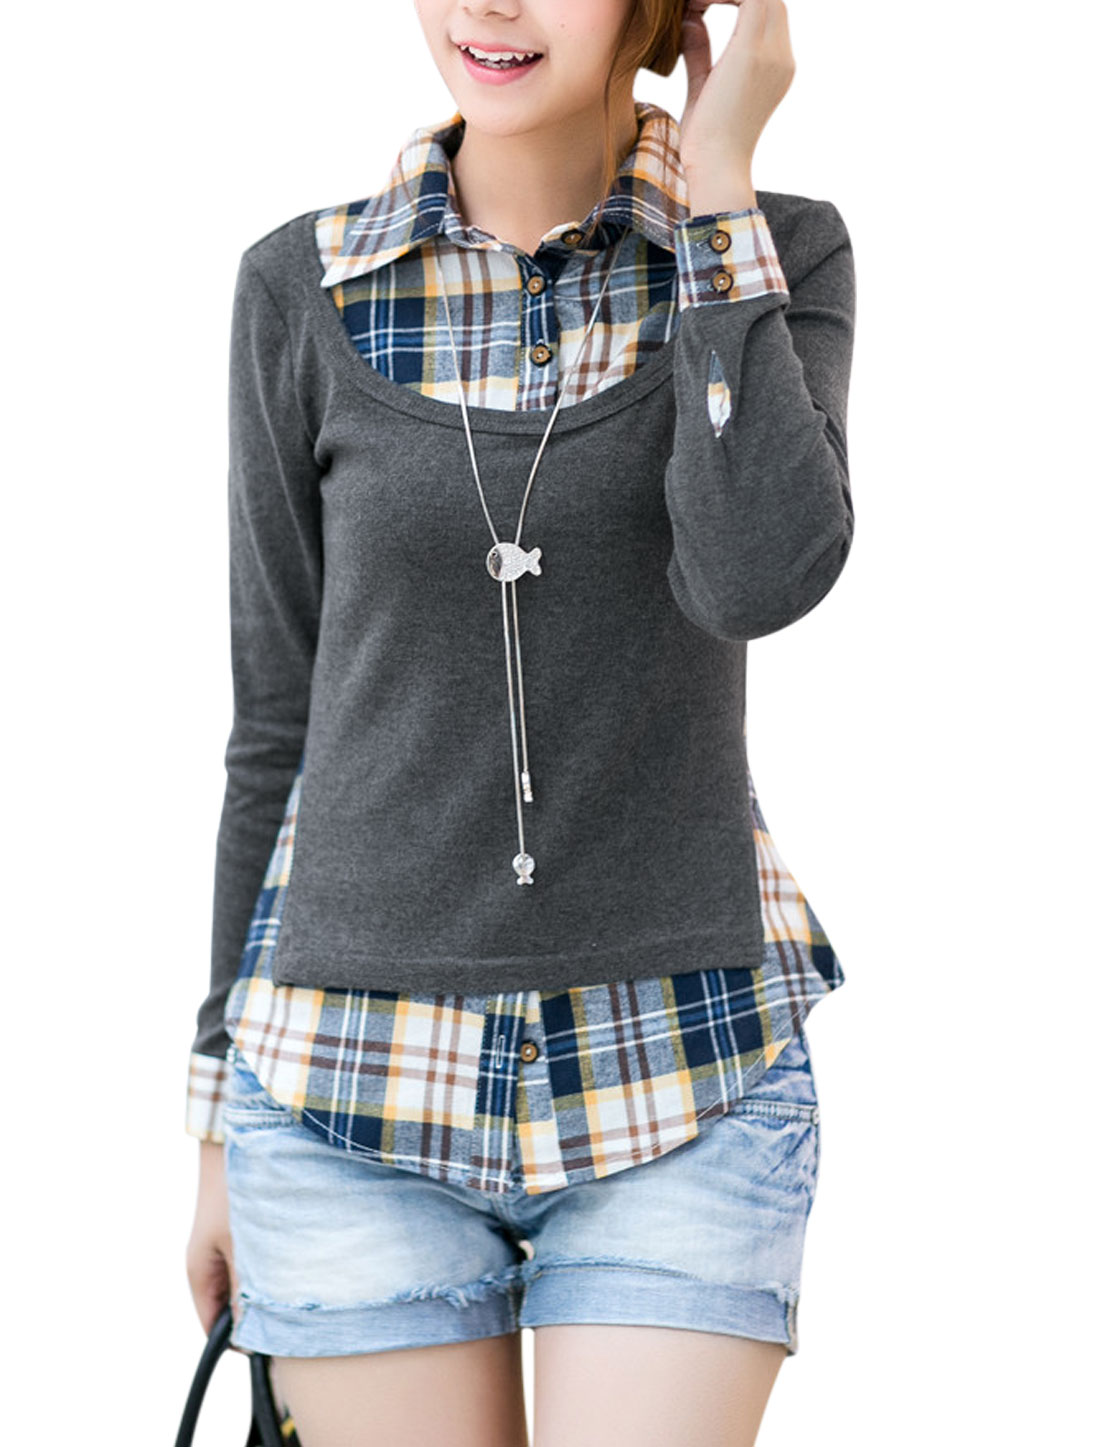 Lady Long Sleeve Plaids Layered Shirts Panel Design T-Shirt Dark Gray S